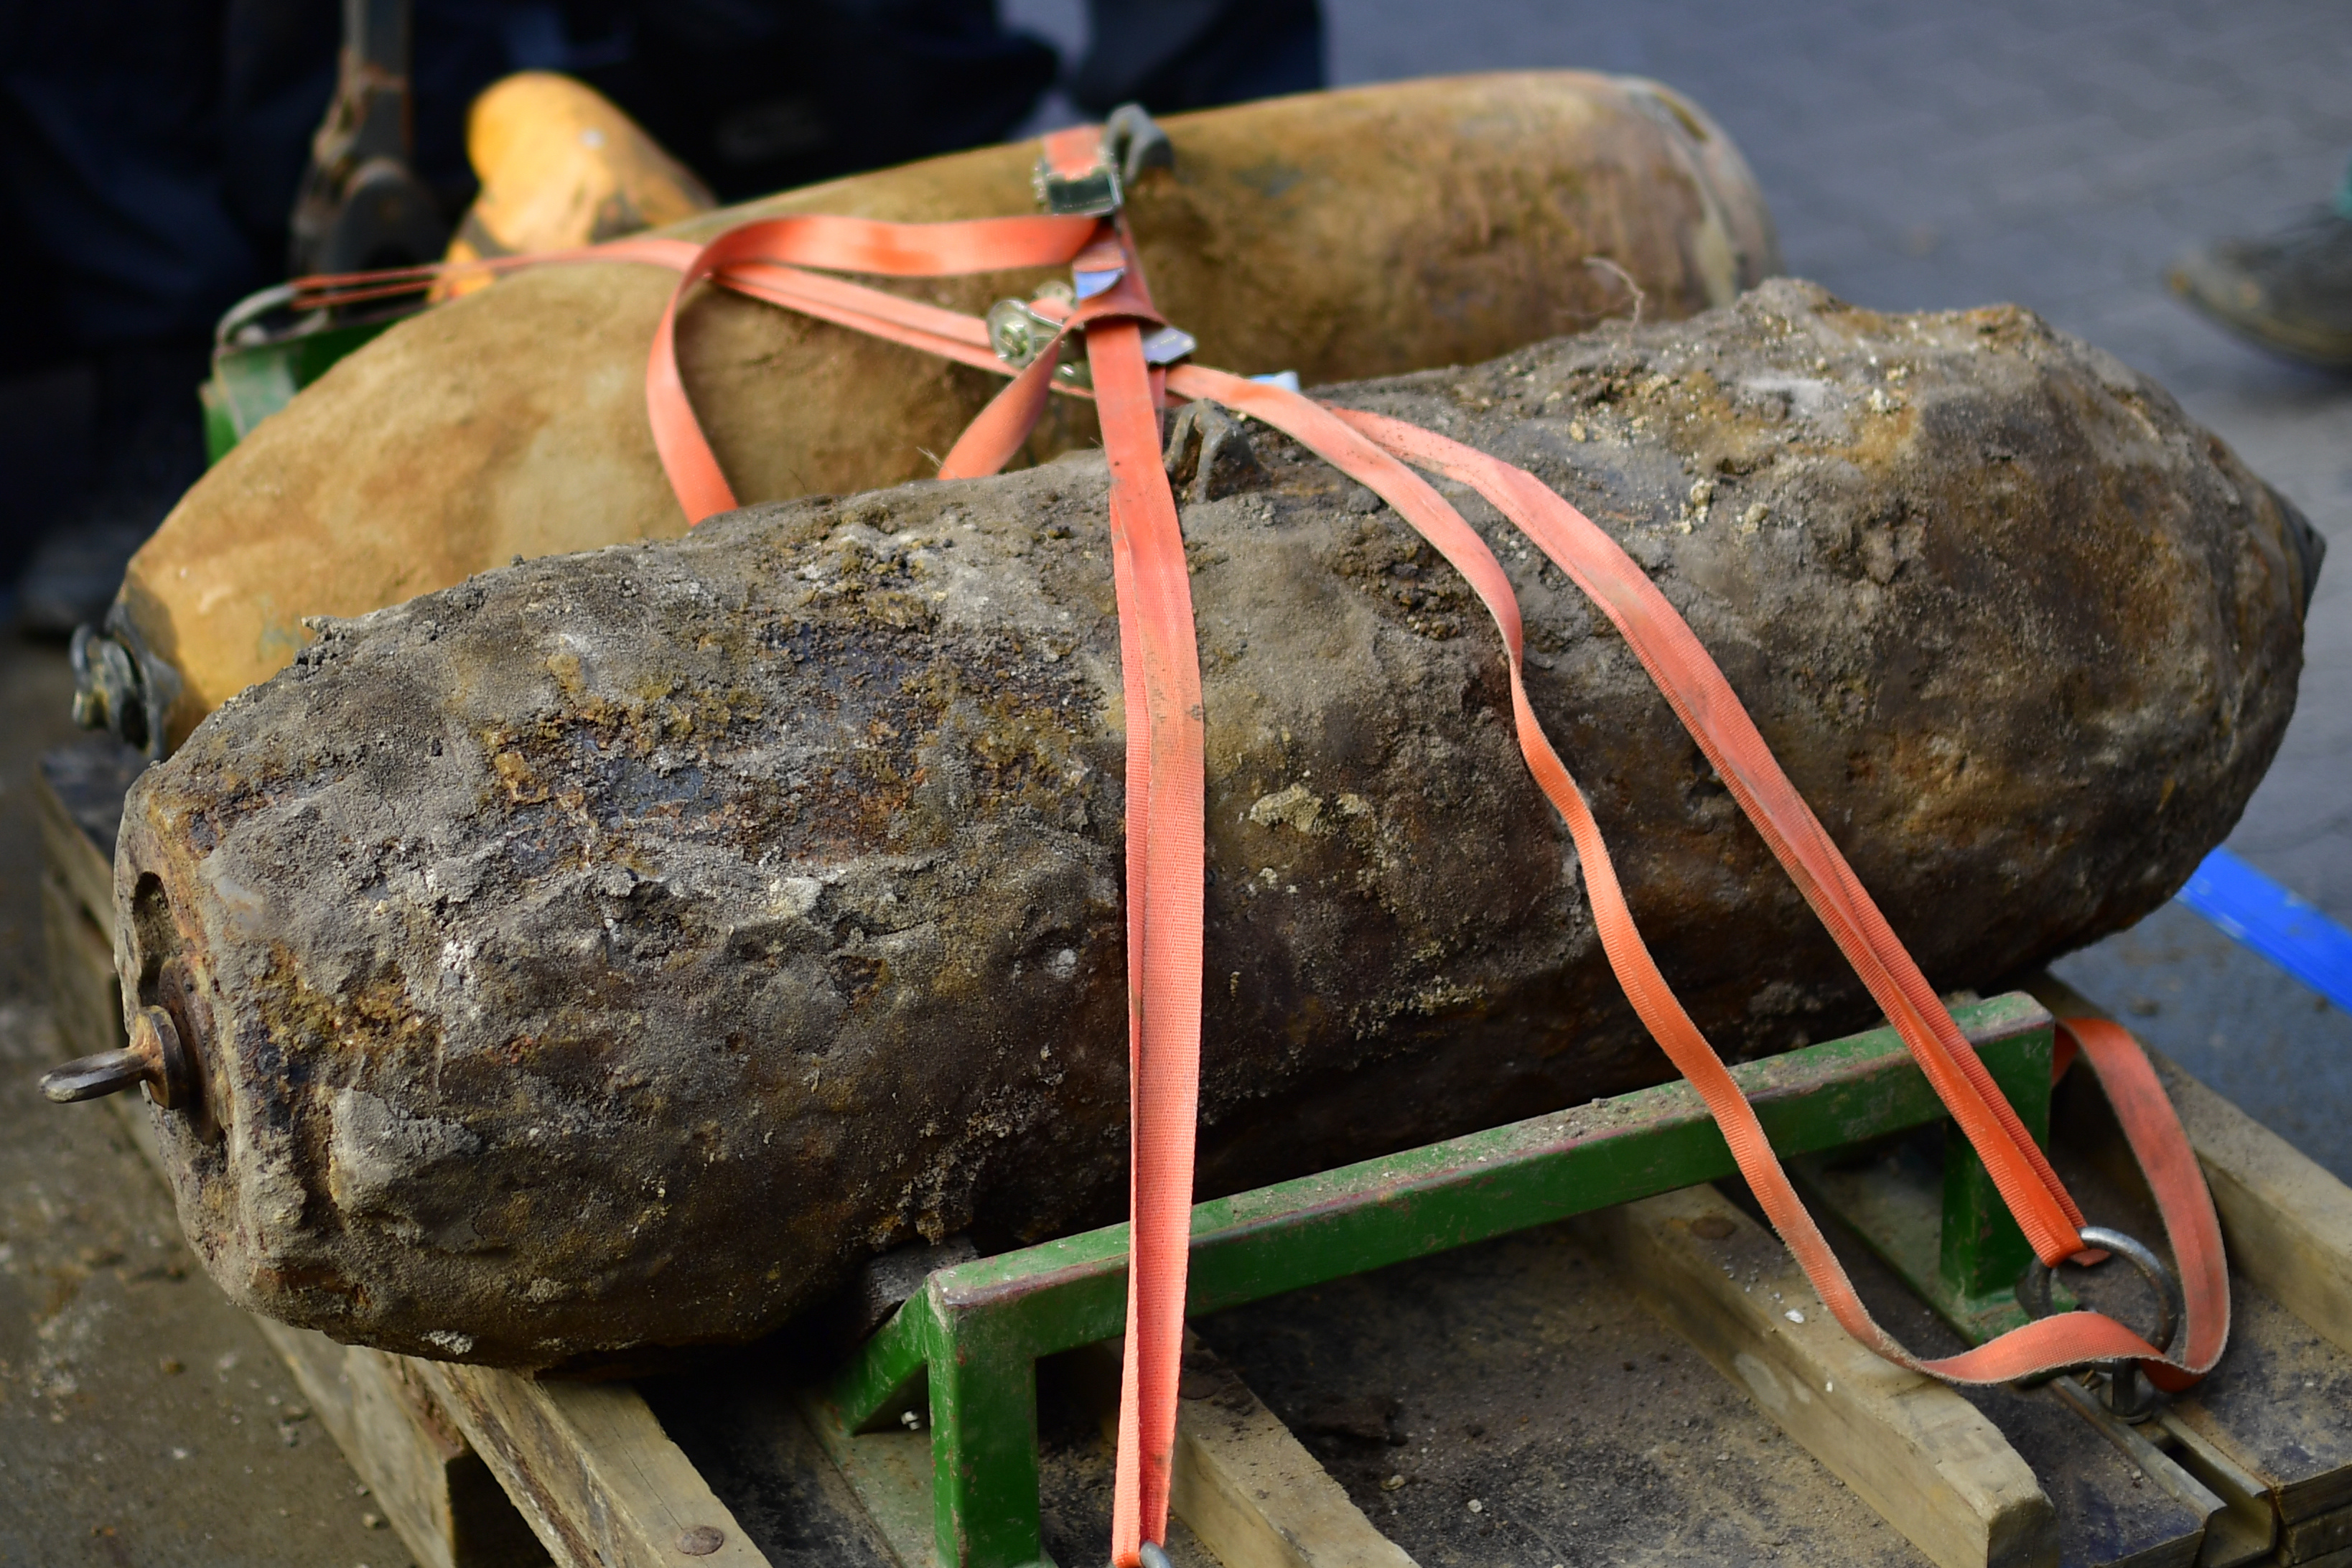 Two bombs are showcased after dismantling the bombs on May 7, 2017 in Hanover, Germany. (Alexander Koerner/Getty Images).